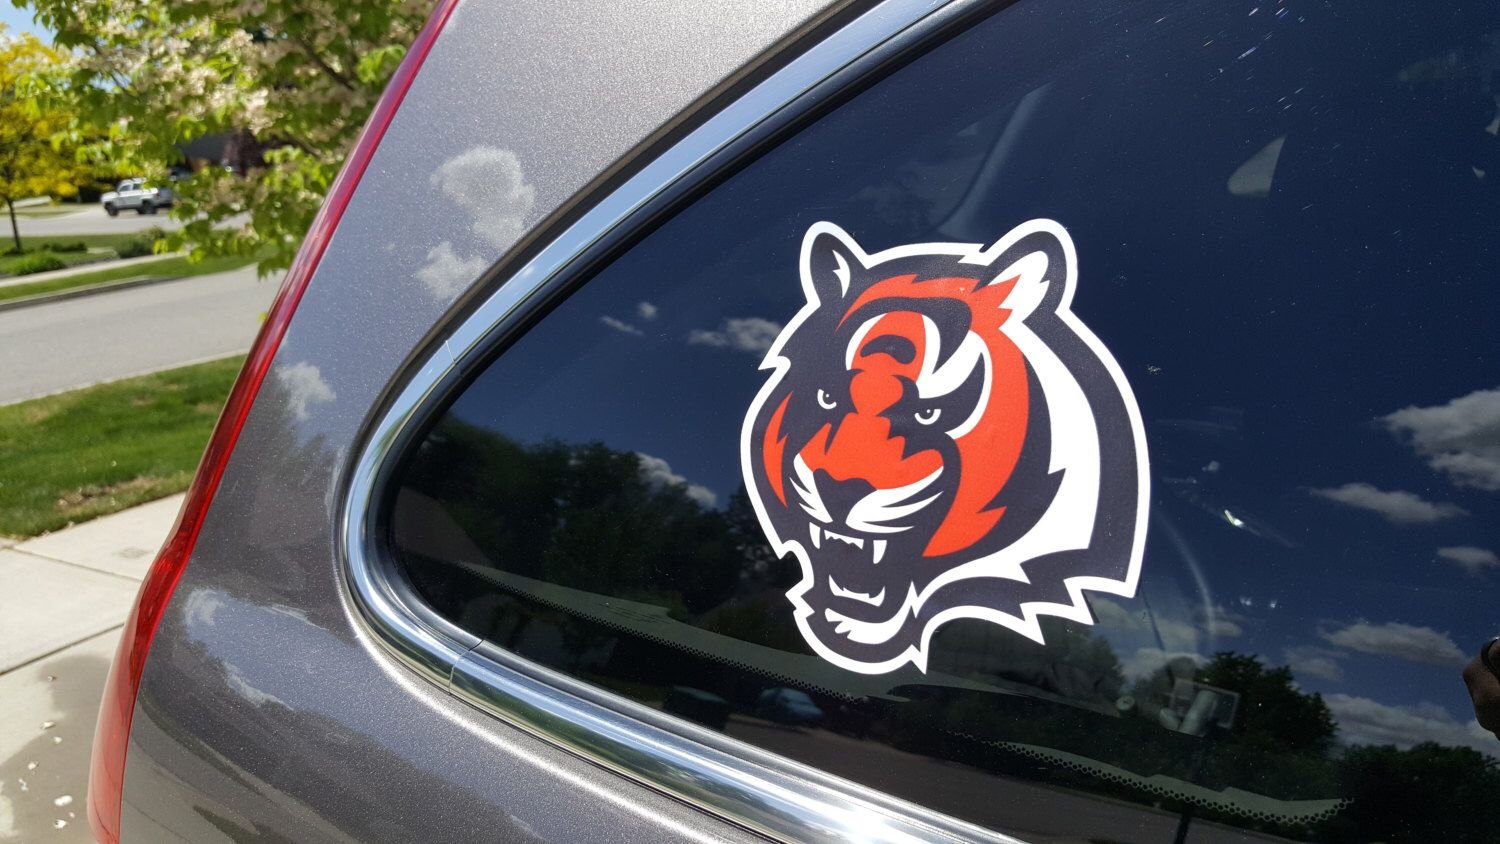 Cincinnati Bengals Limited Edition Vinyl Sticker Decal Free Shipping! Check it Out! Free and Fast Shipping!  July Special Buy 2 Get 1 Free! by SeahawksFanShop on Etsy https://www.etsy.com/listing/384301314/cincinnati-bengals-limited-edition-vinyl